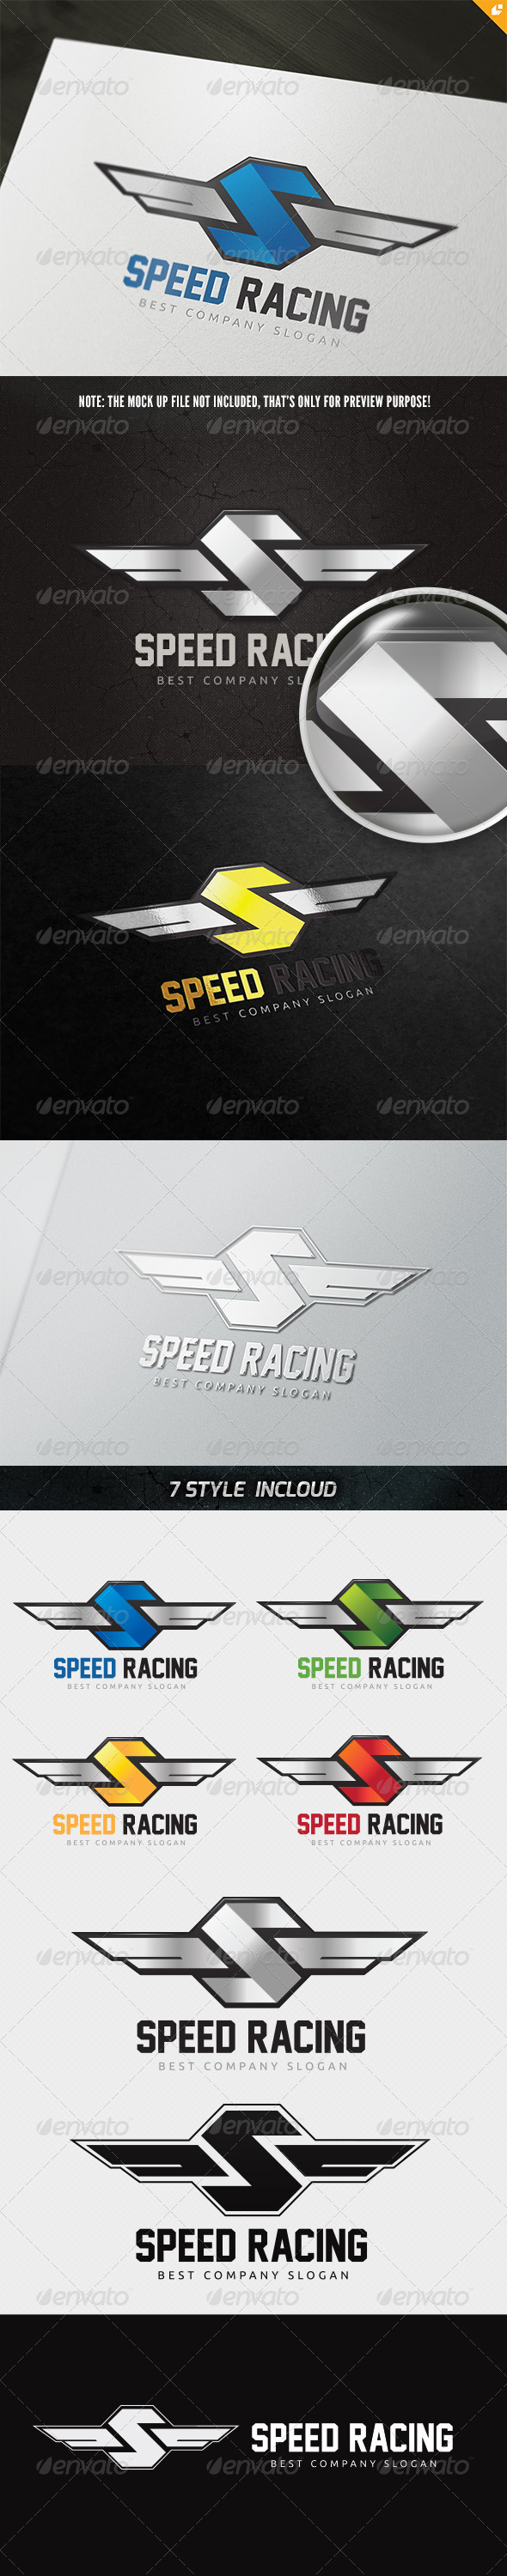 Speed Racing Logo - 3d Abstract